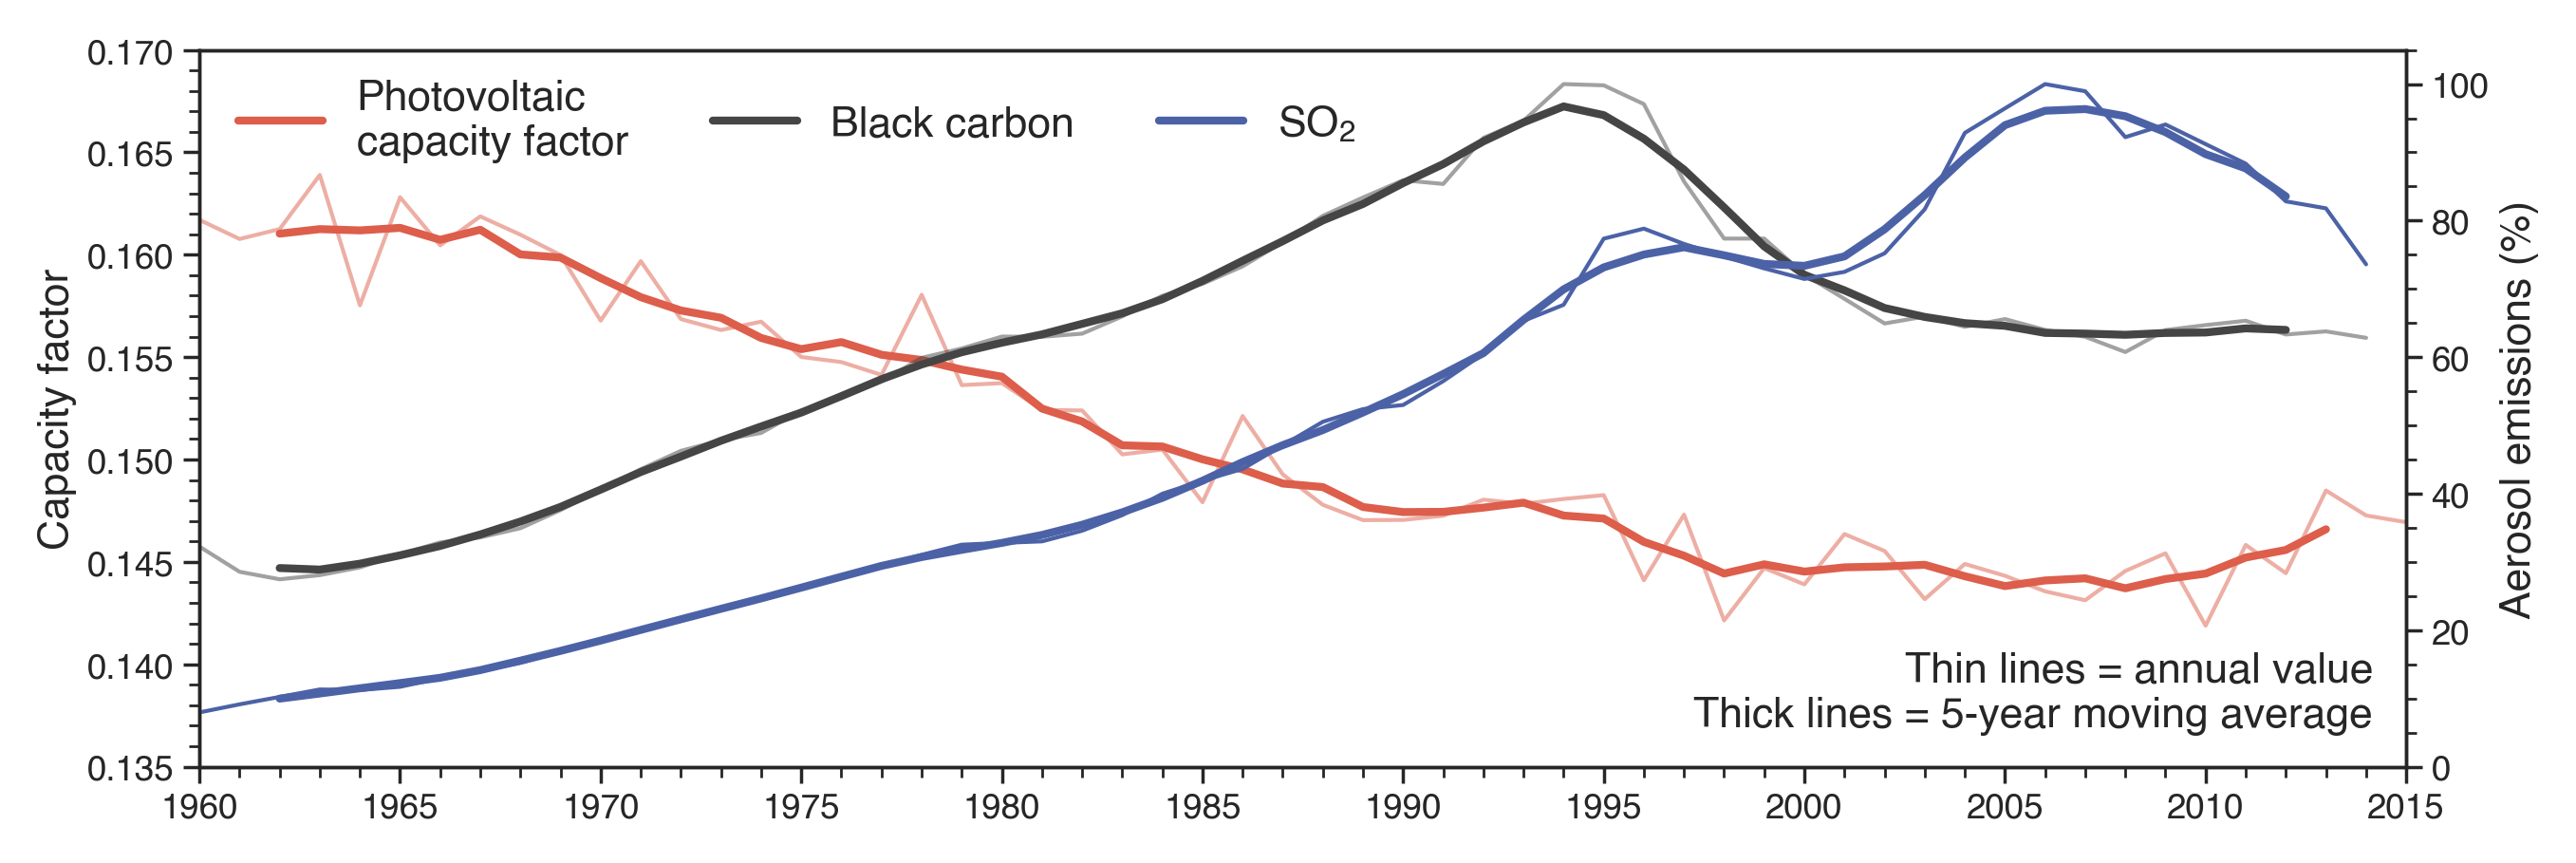 Historic (1960 – 2015) capacity factors (red) and SO2 (blue) and black carbon (black) emissions in China as a percentage of peak emissions in 1994 and 2005 respectively. Thin lines are annual, thick lines 5-year moving mean values. Adapted from Sweerts, Pfenninger, Yang, Folini, van der Zwaan and Wild (2019).